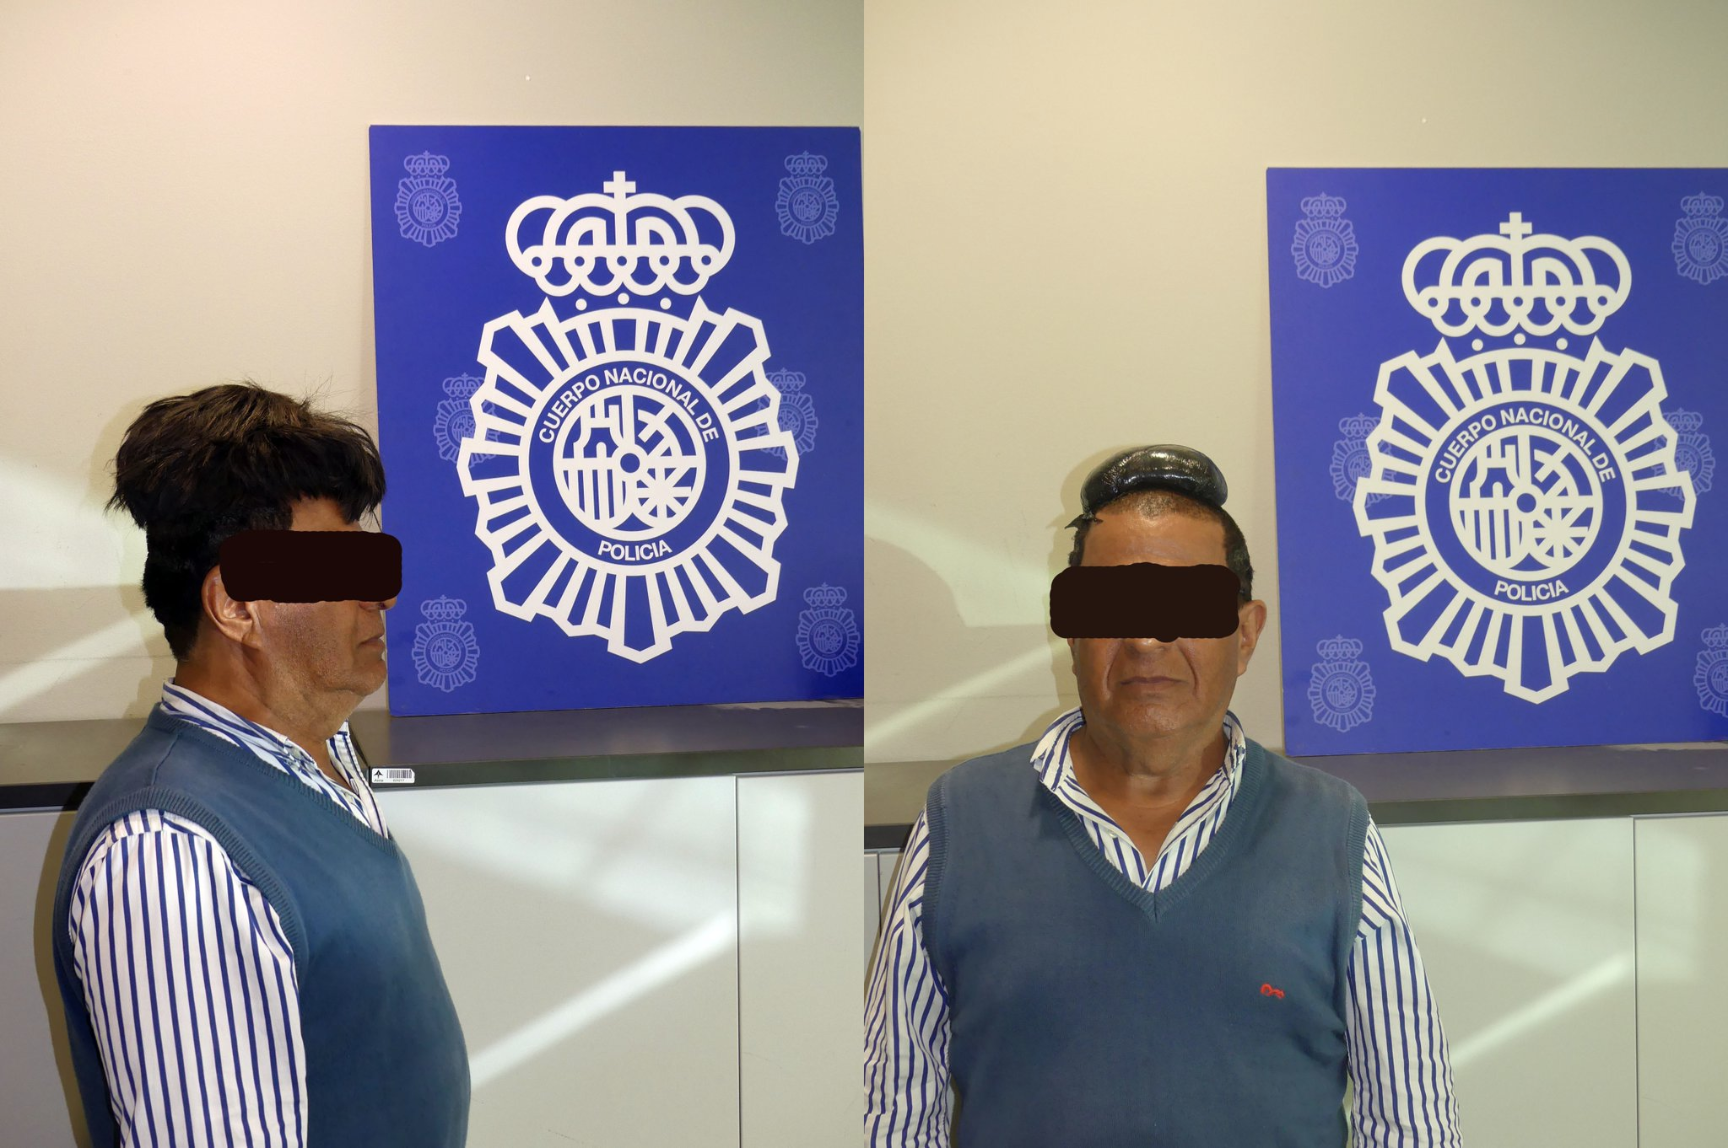 Cocaine wig man. (Twitter/@Policia)